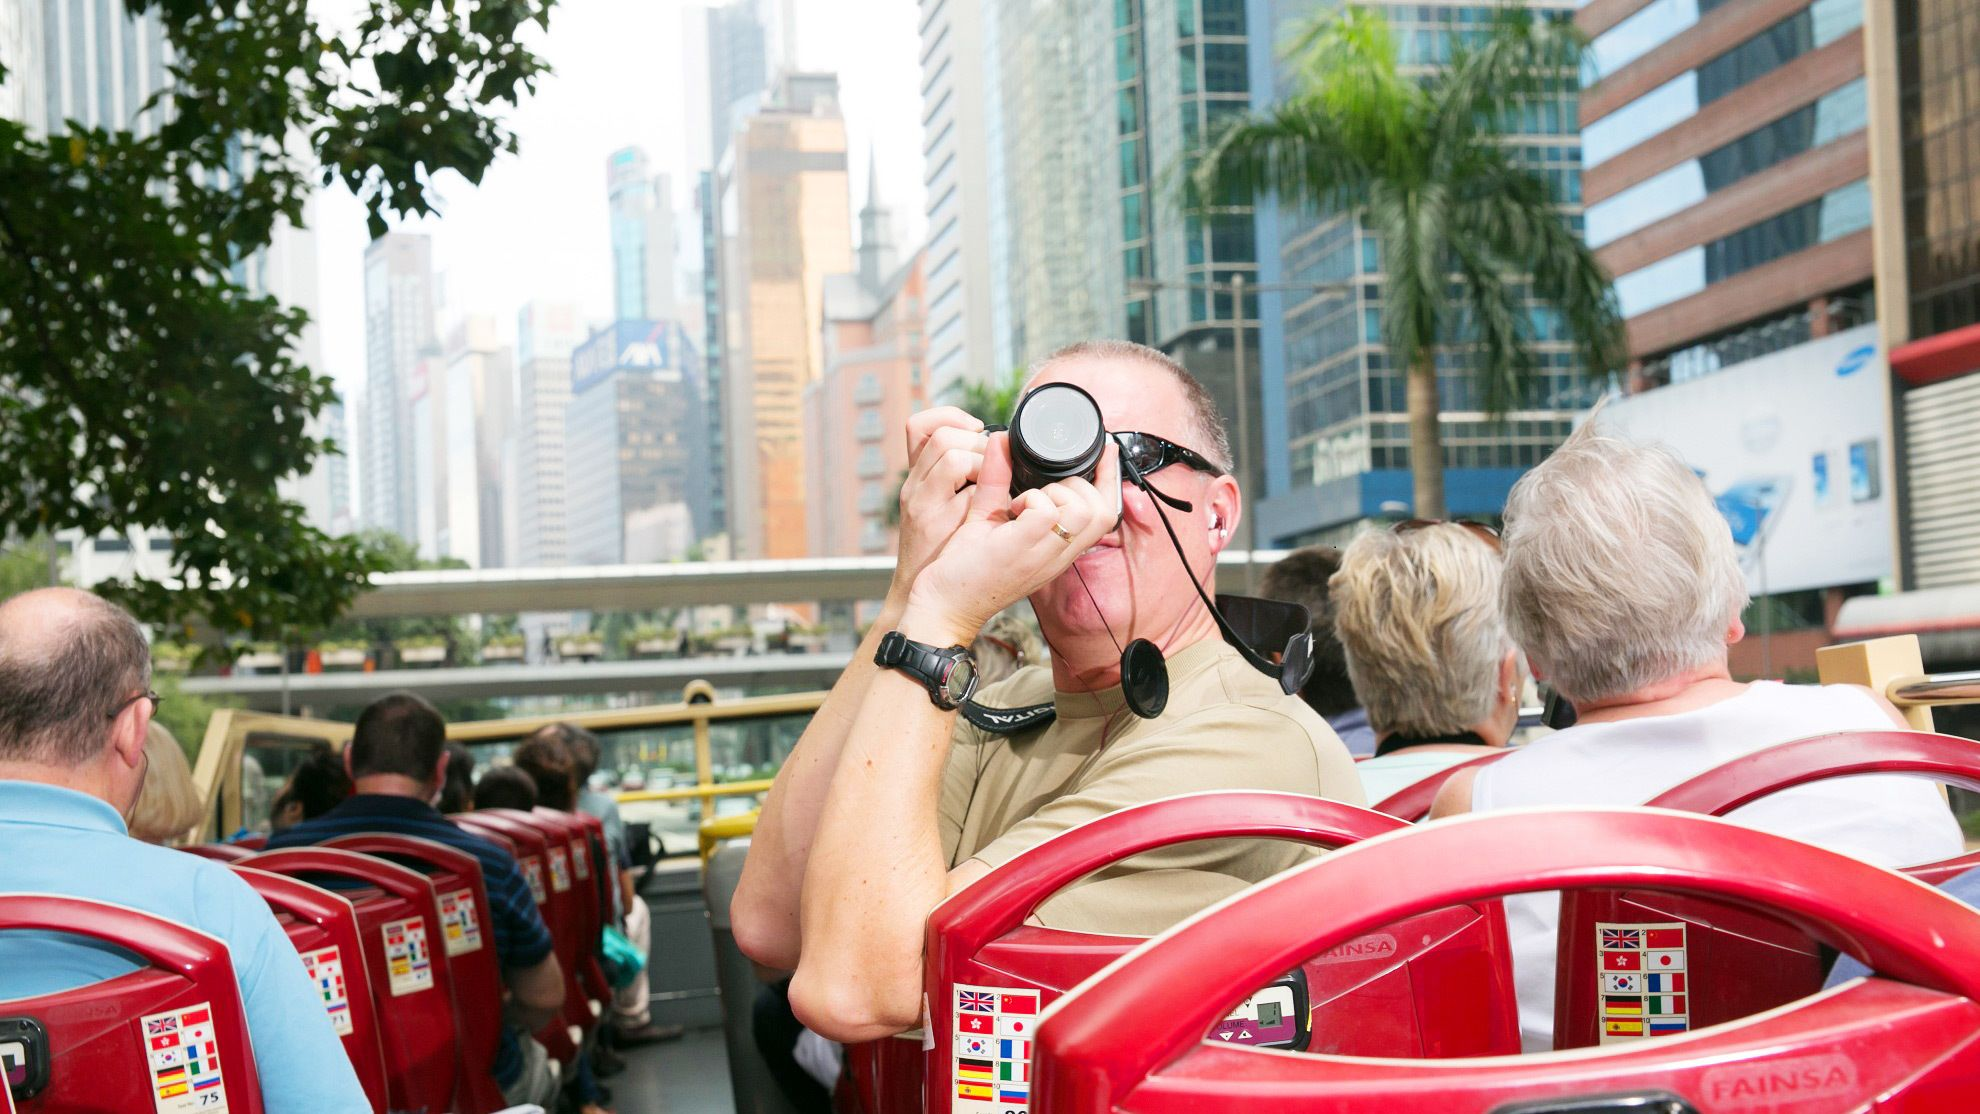 Taking photos from the top deck of the bus in Hong Kong